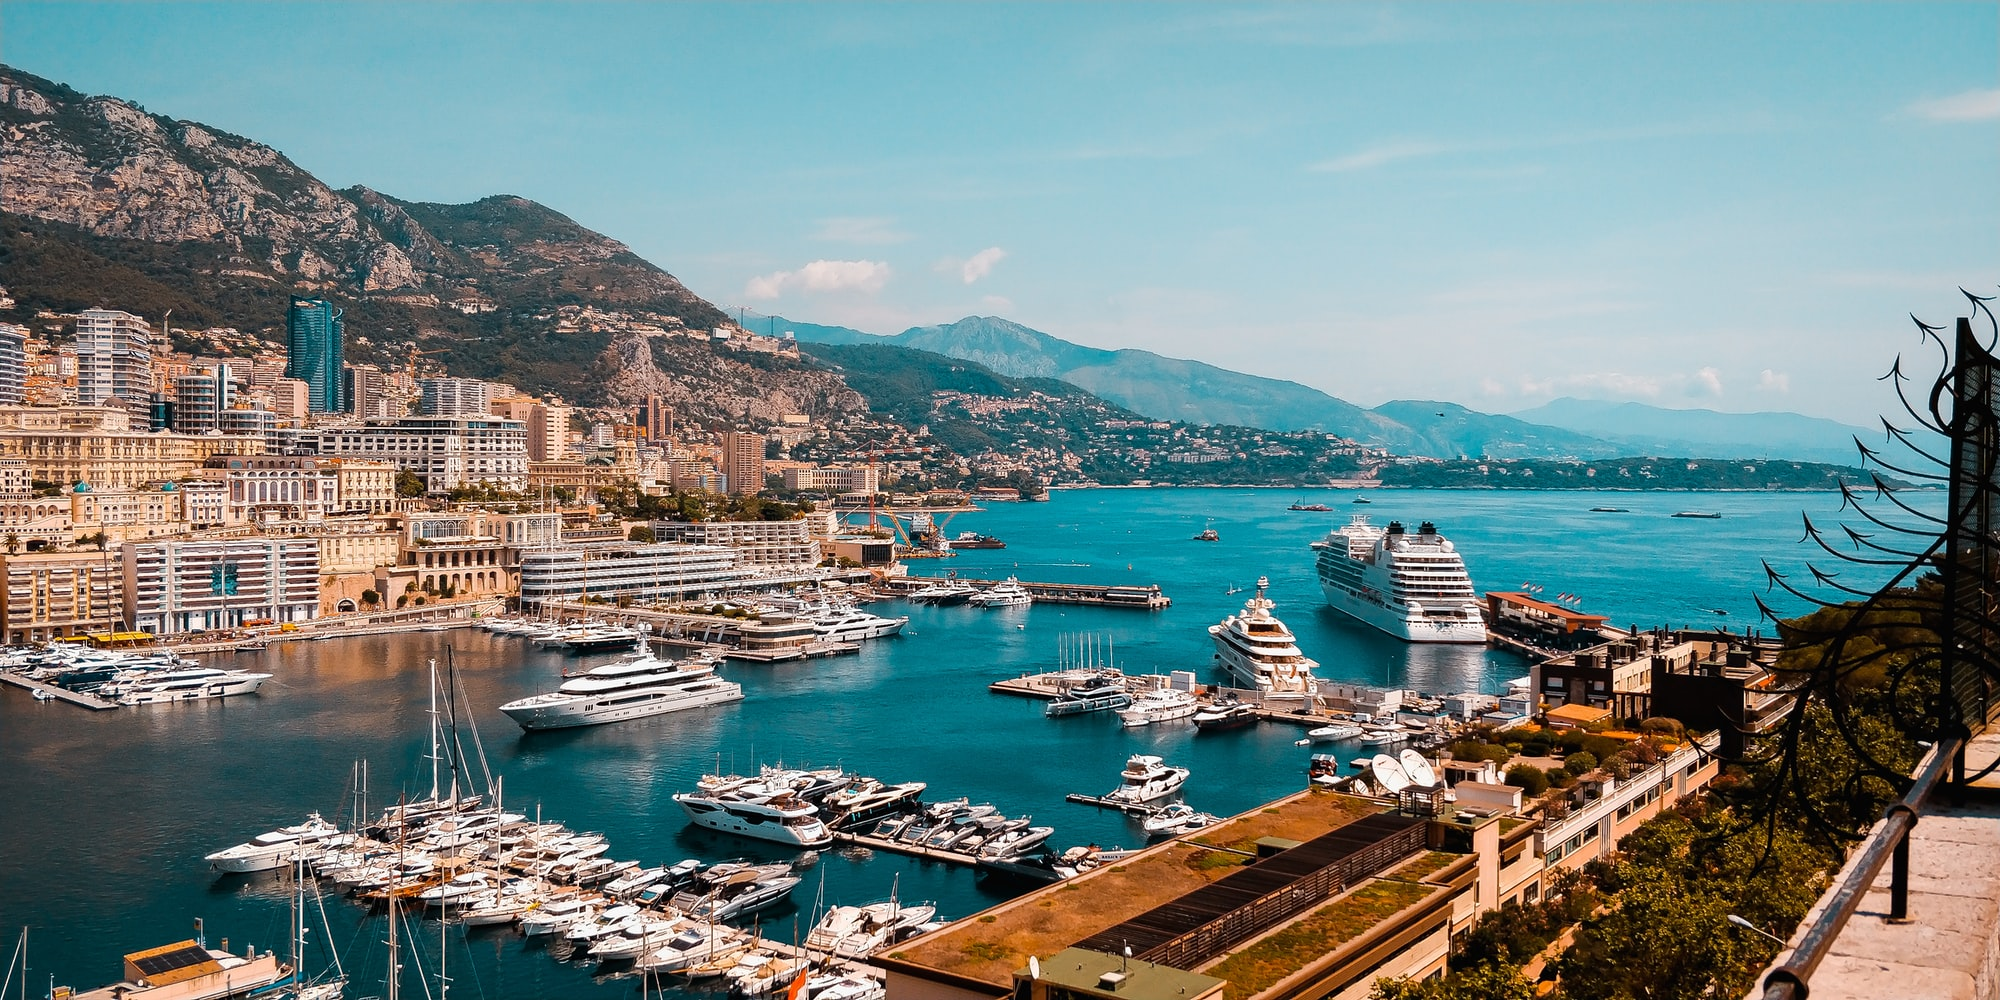 This one's from back in 2019 summer. Monaco is truly a beautiful place!!